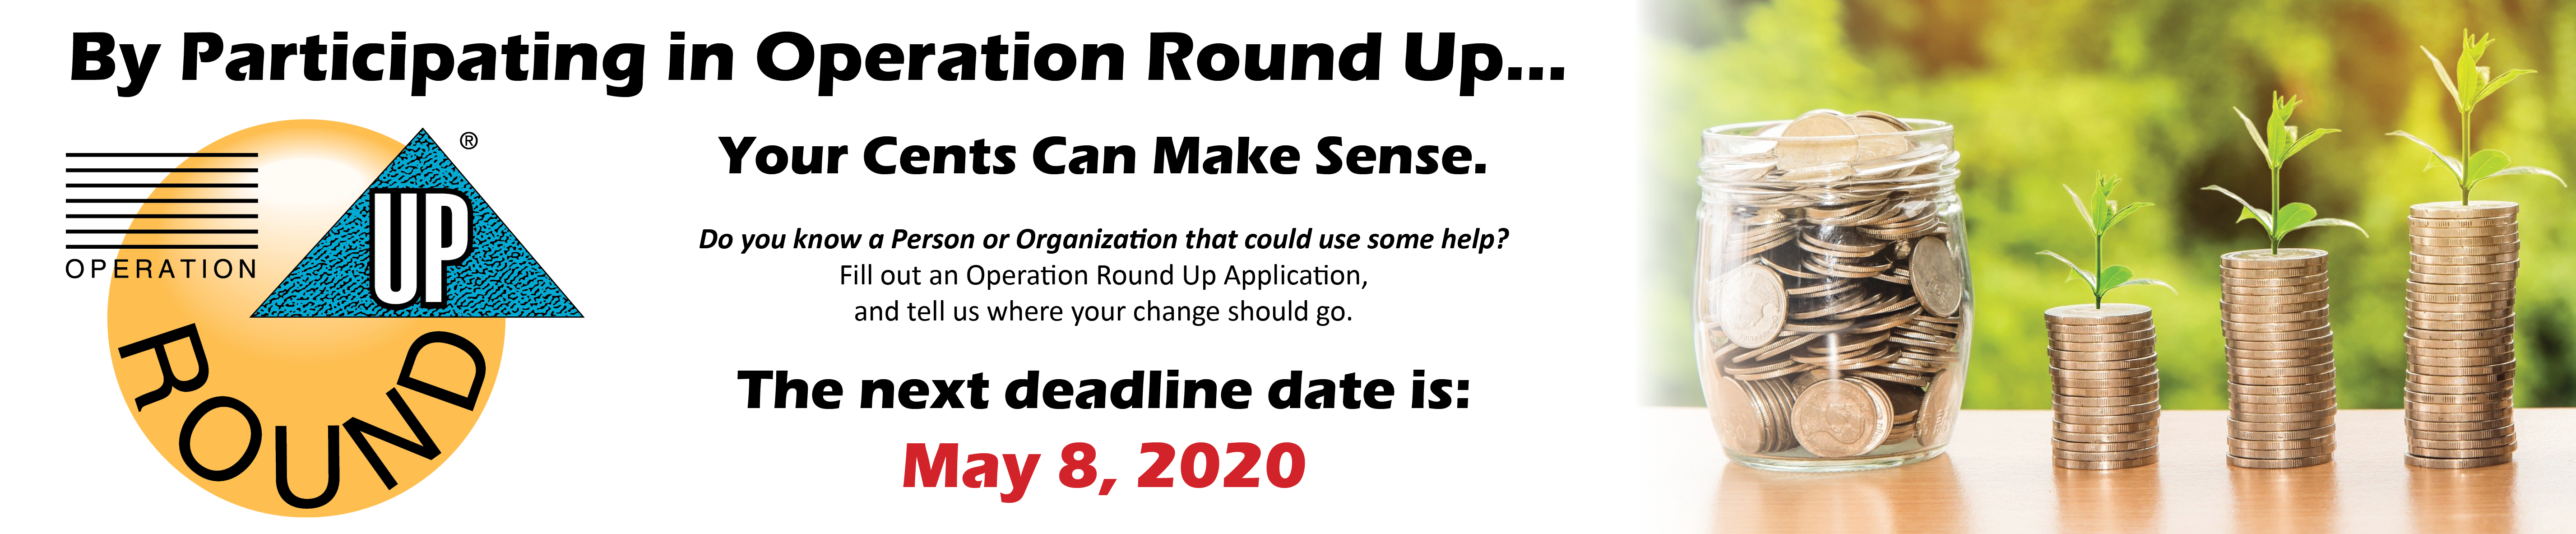 Operation Round Up Deadline